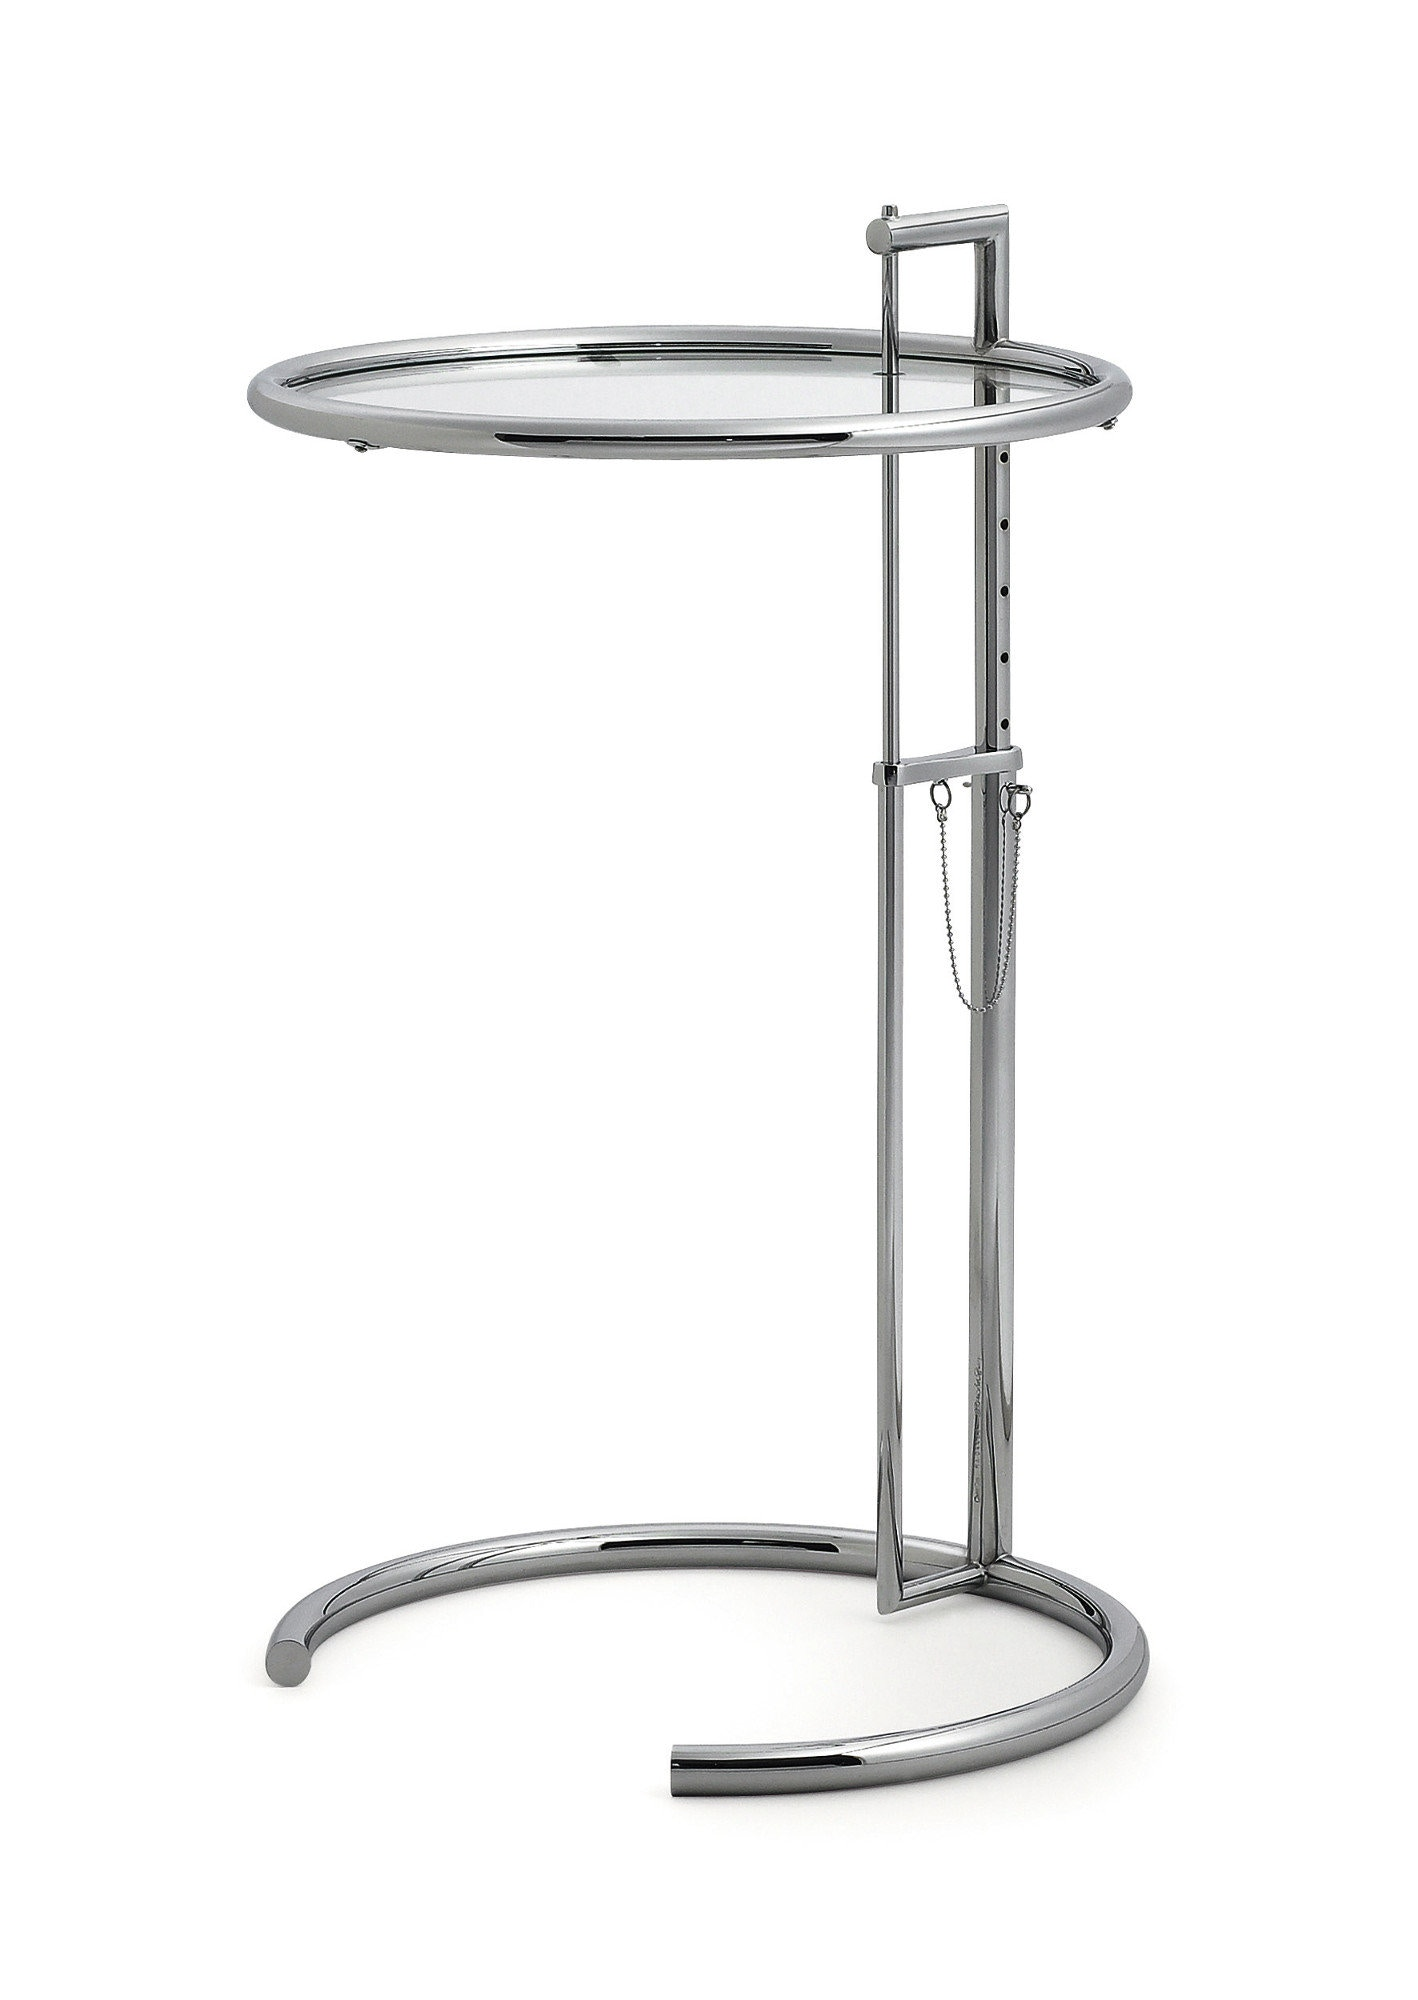 Classicon - Adjustable Table E 1027 - chrome - Verre en cristal clair - 8